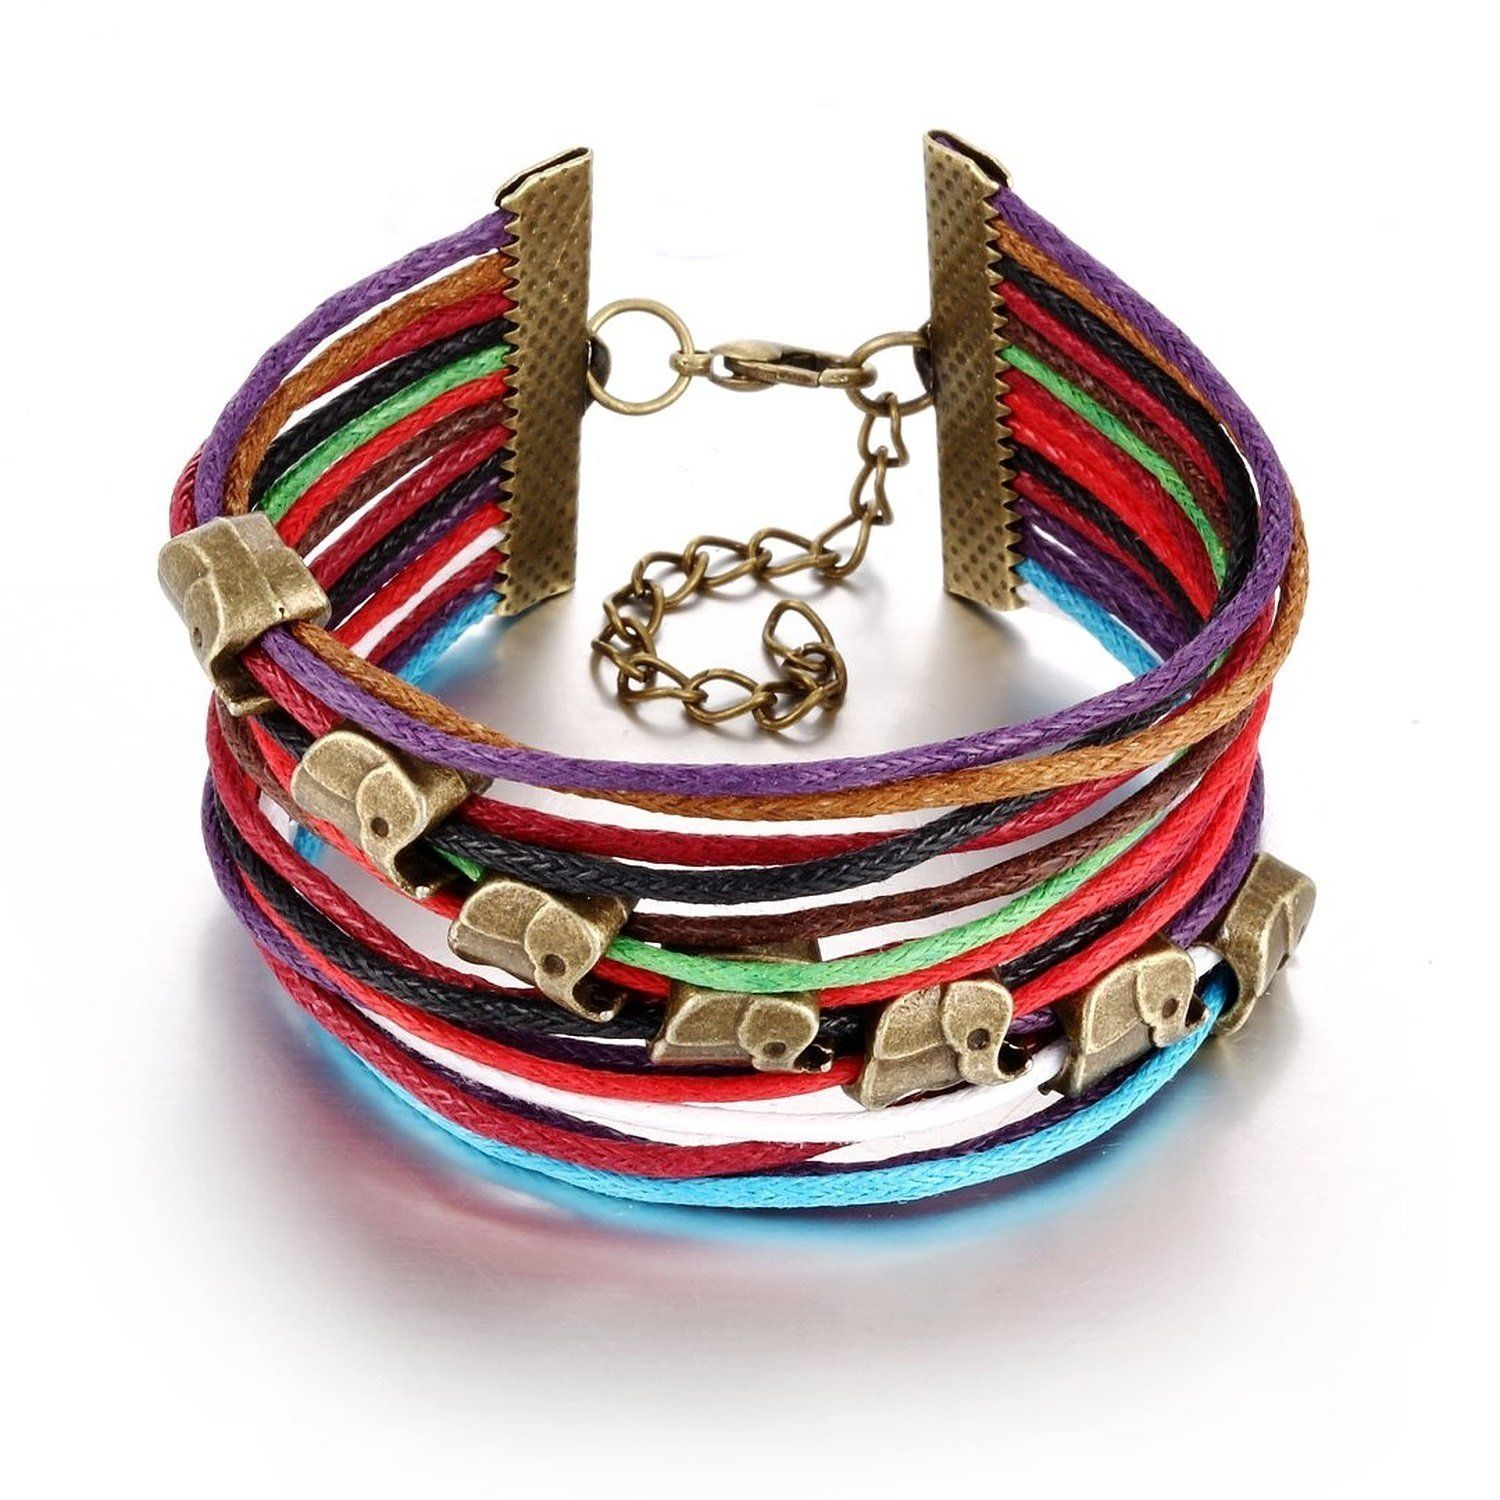 Blowin elephant beads metal leather colorful weave bracelet strands